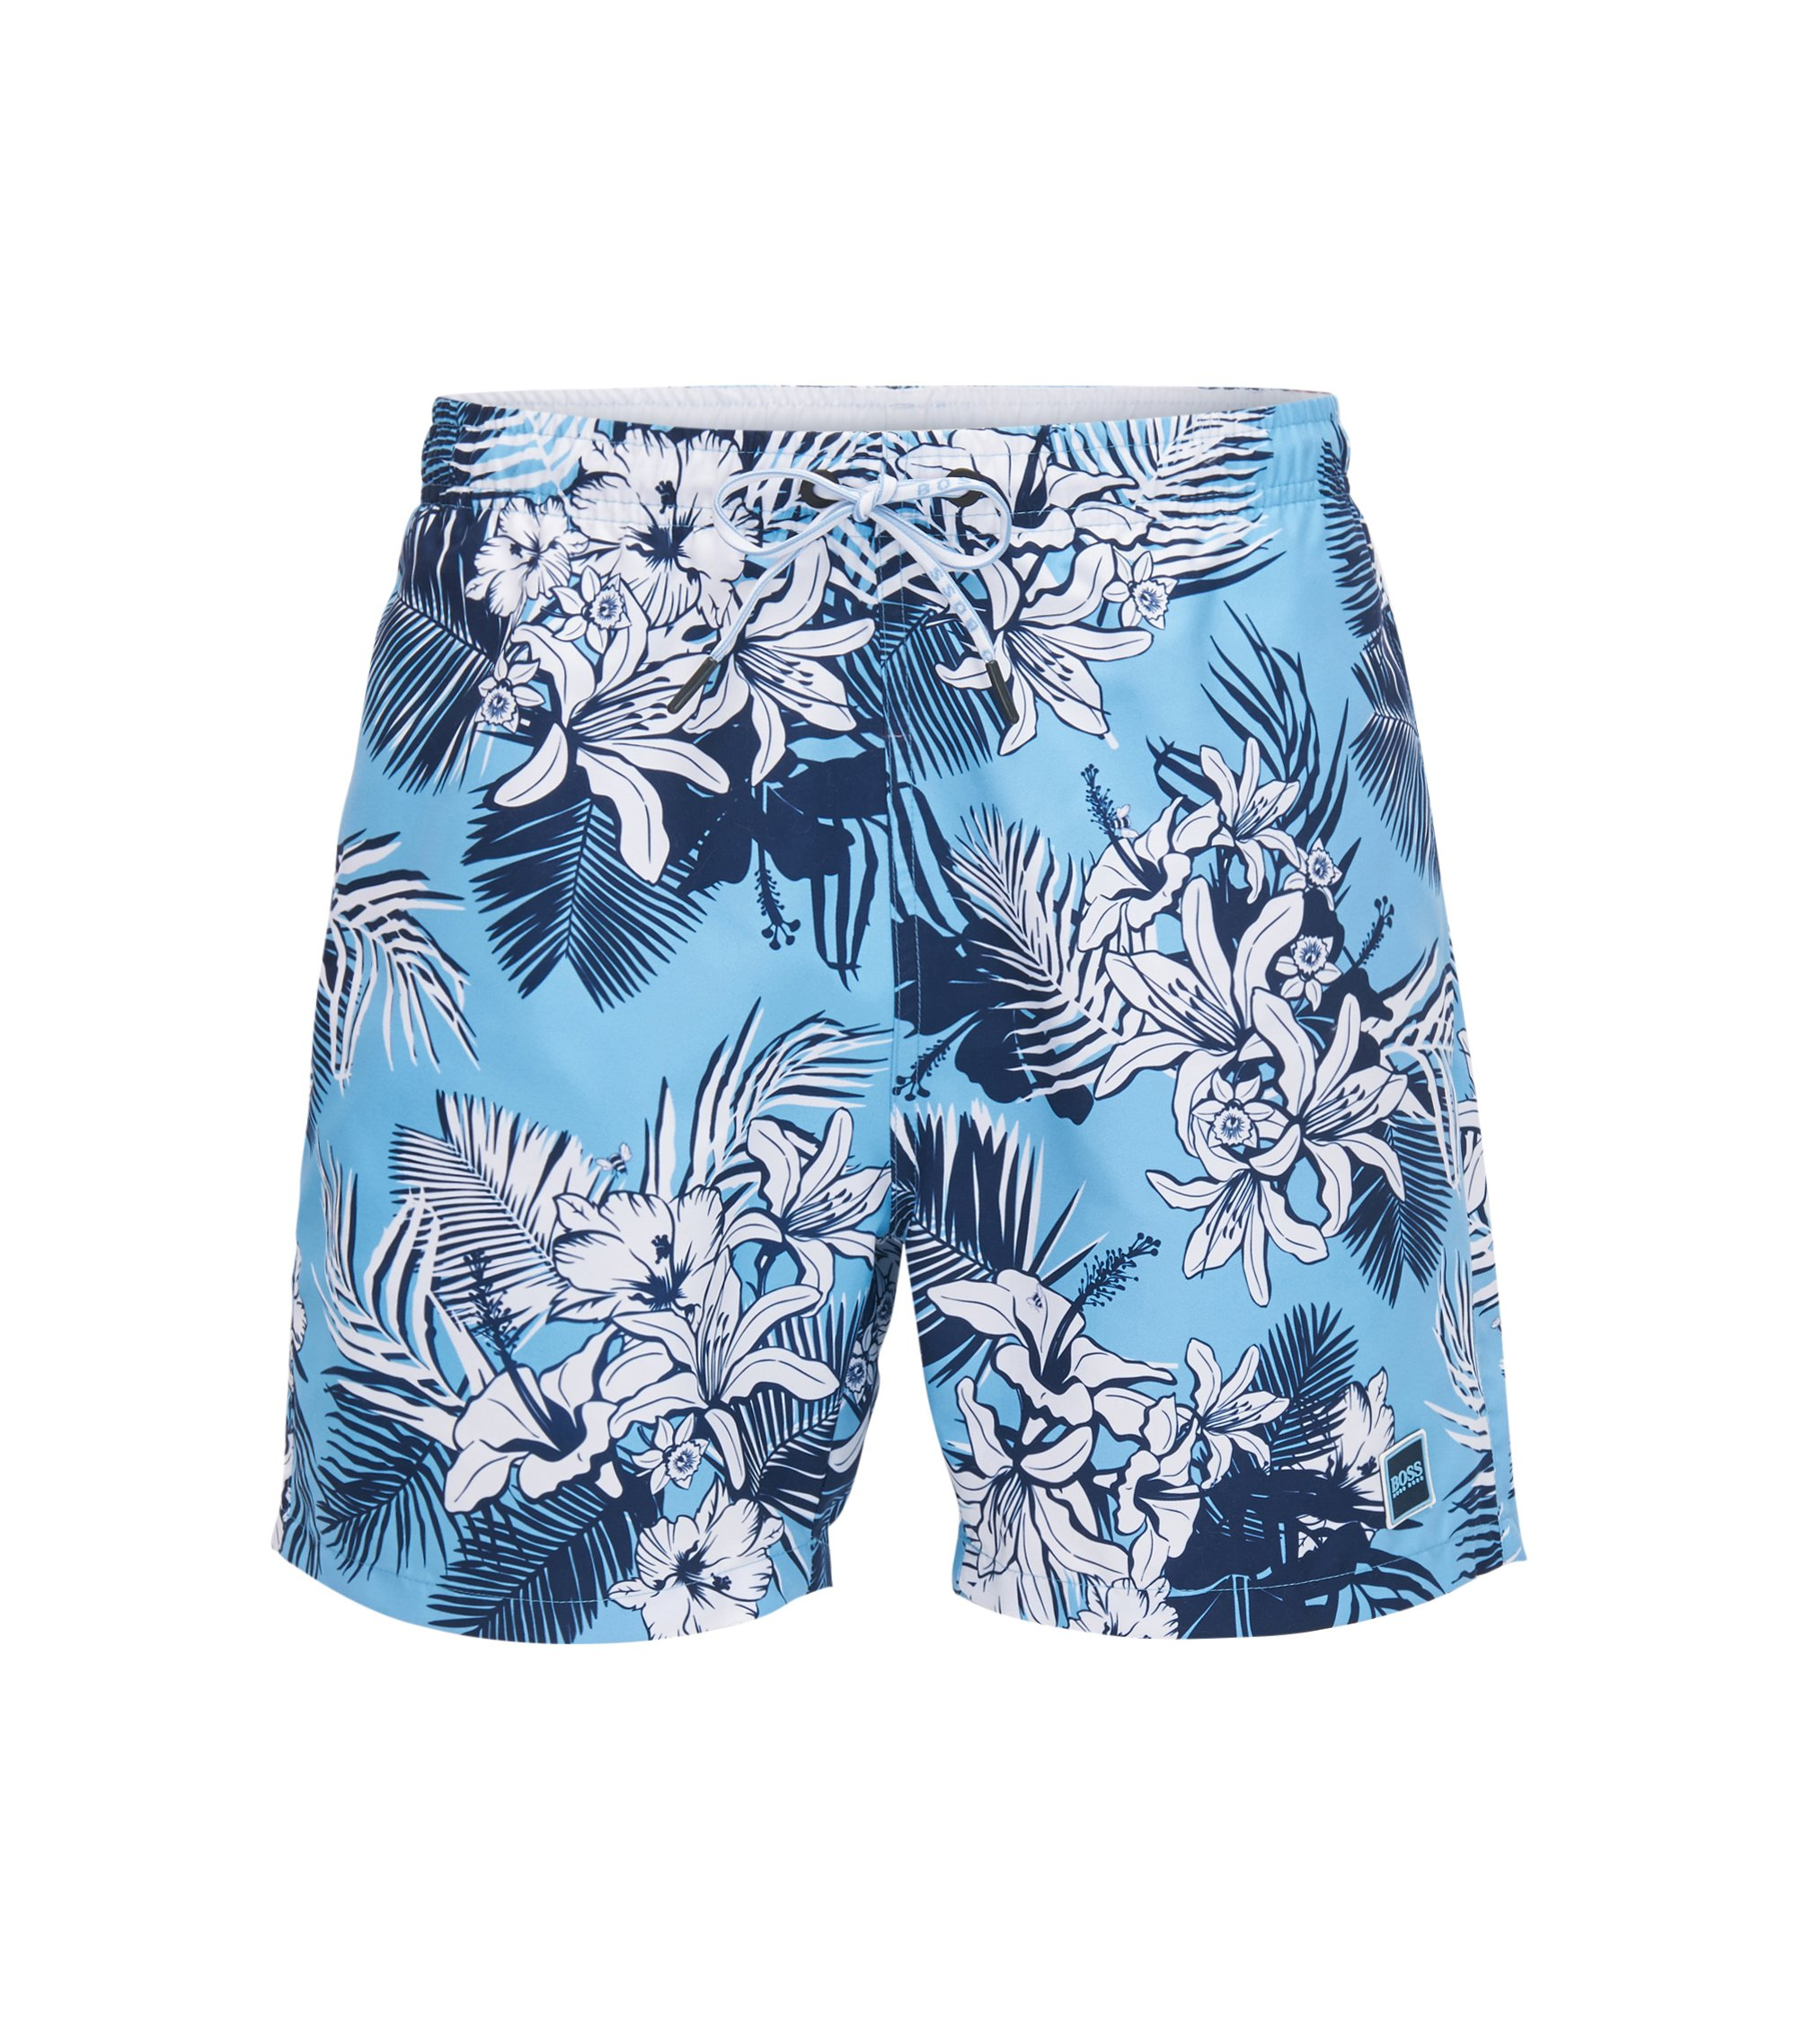 Drawstring swim shorts with palm print, Open Blue